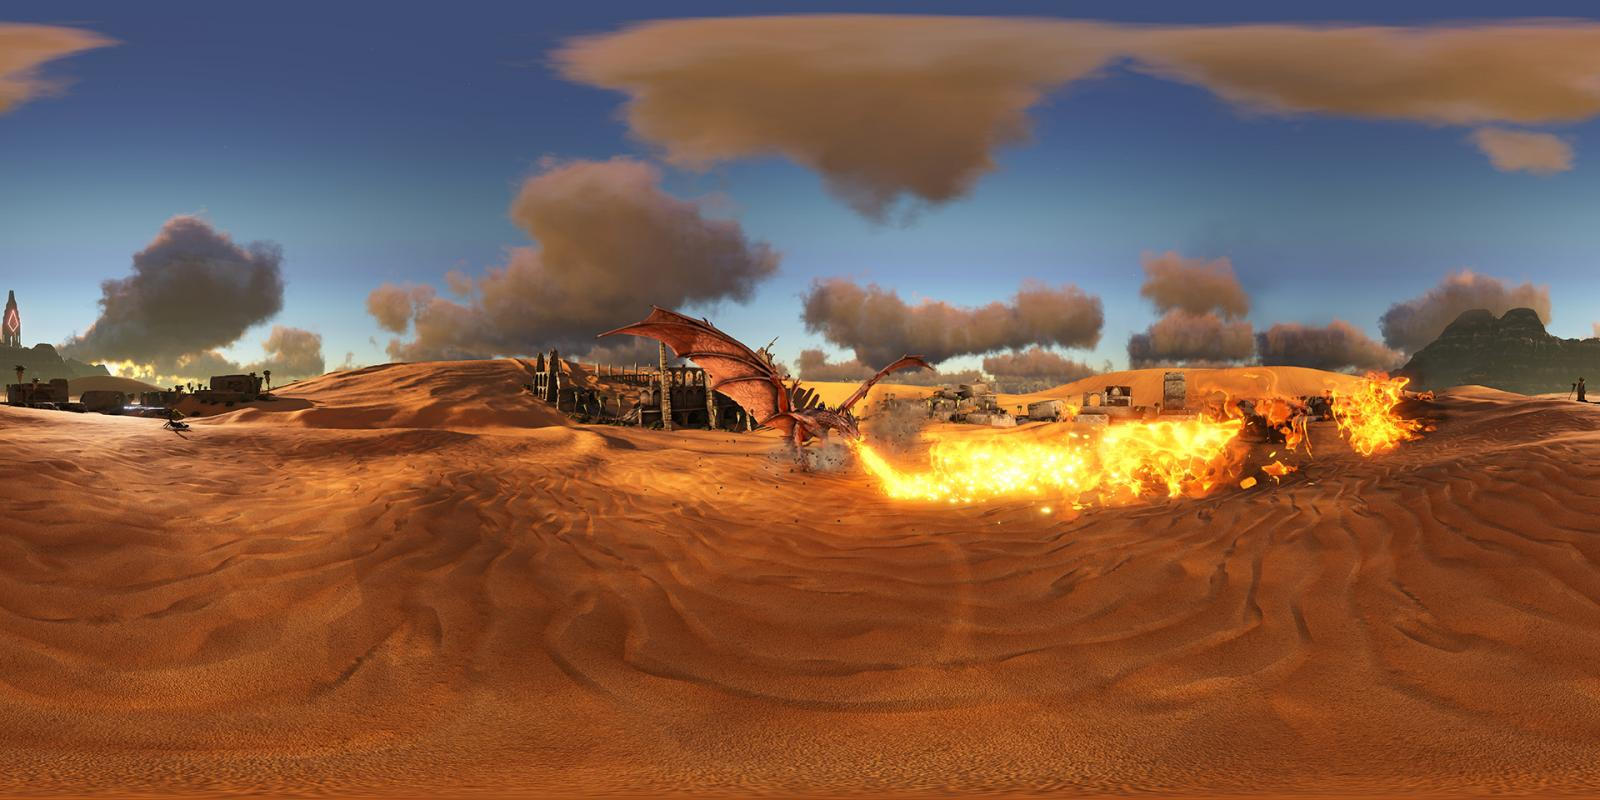 large.59e14ae95573c_Vakarian-Fireinthedunes-Panoramic360Stereoscopic3D.jpg